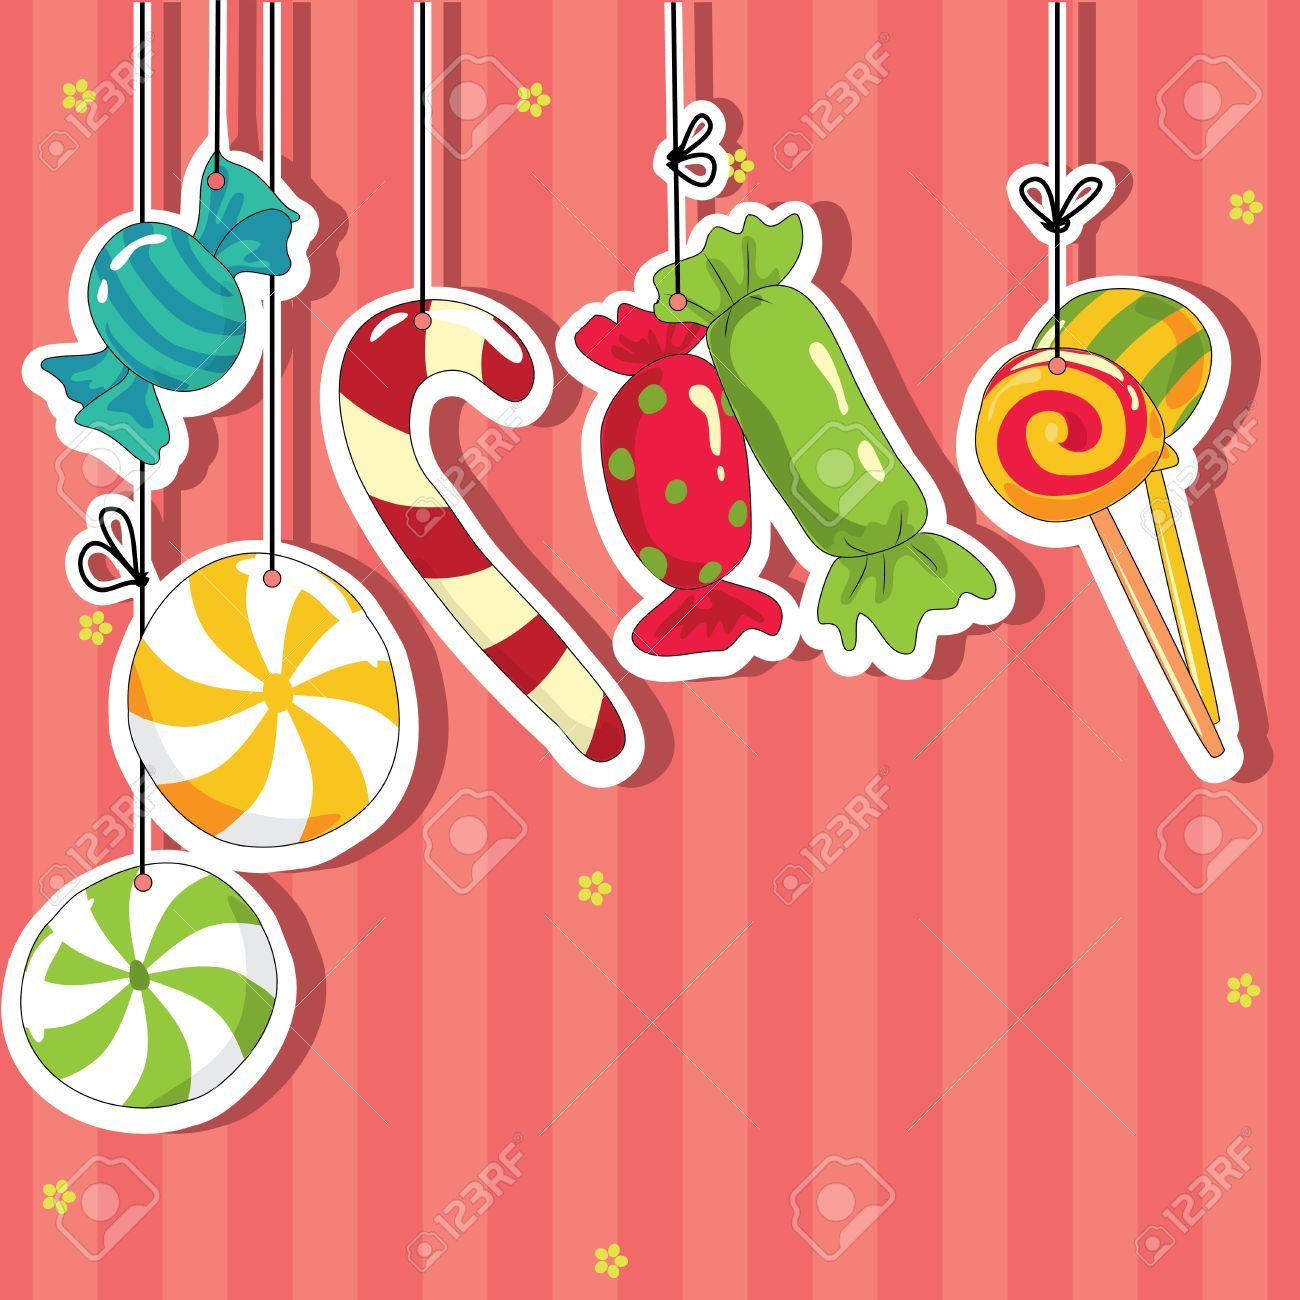 Sweets on strings. Vector illustration. Stock Vector - 12751393